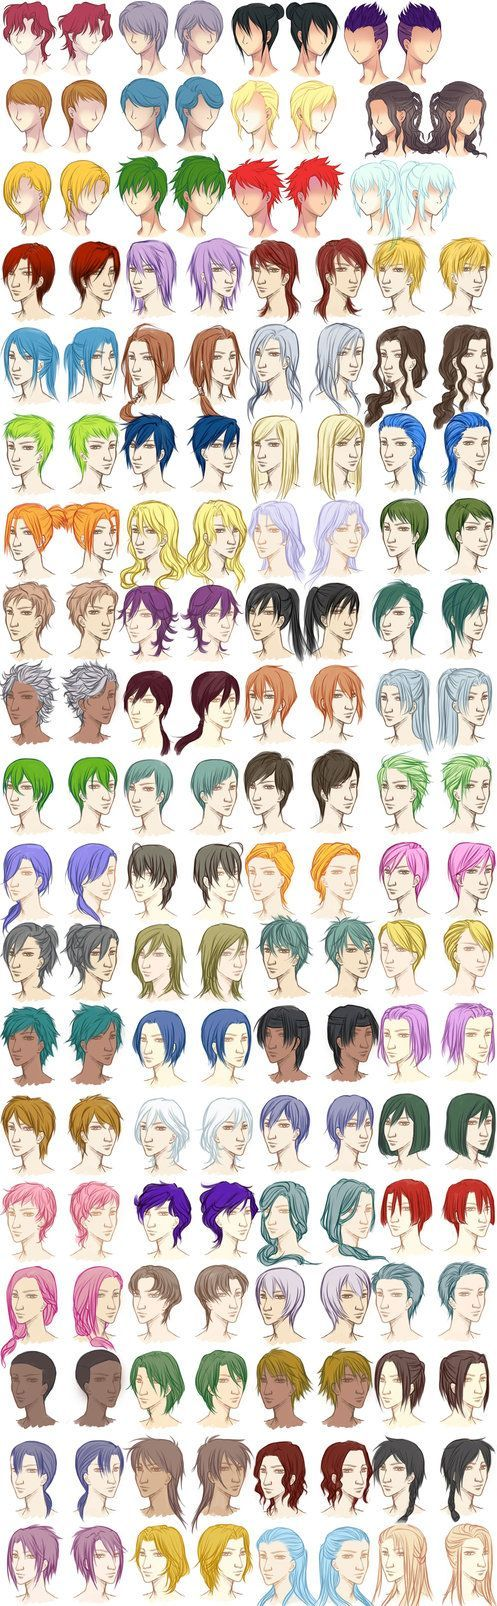 nice Male Hairstyle Reference Sheet by dawniechi on DeviantArt...